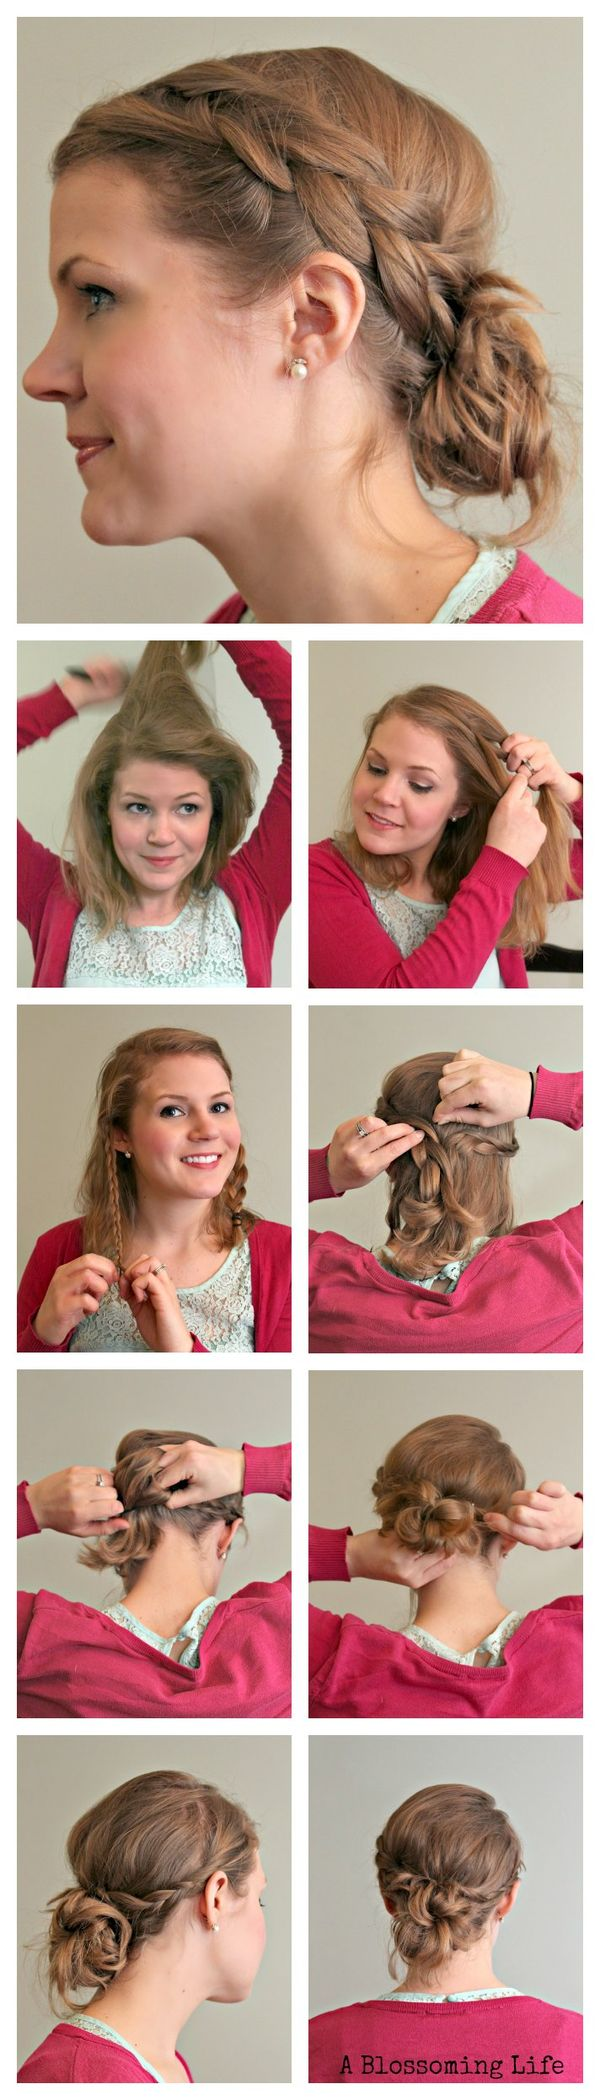 Diy easy braid updo tutorial by a blossoming life hair pinterest